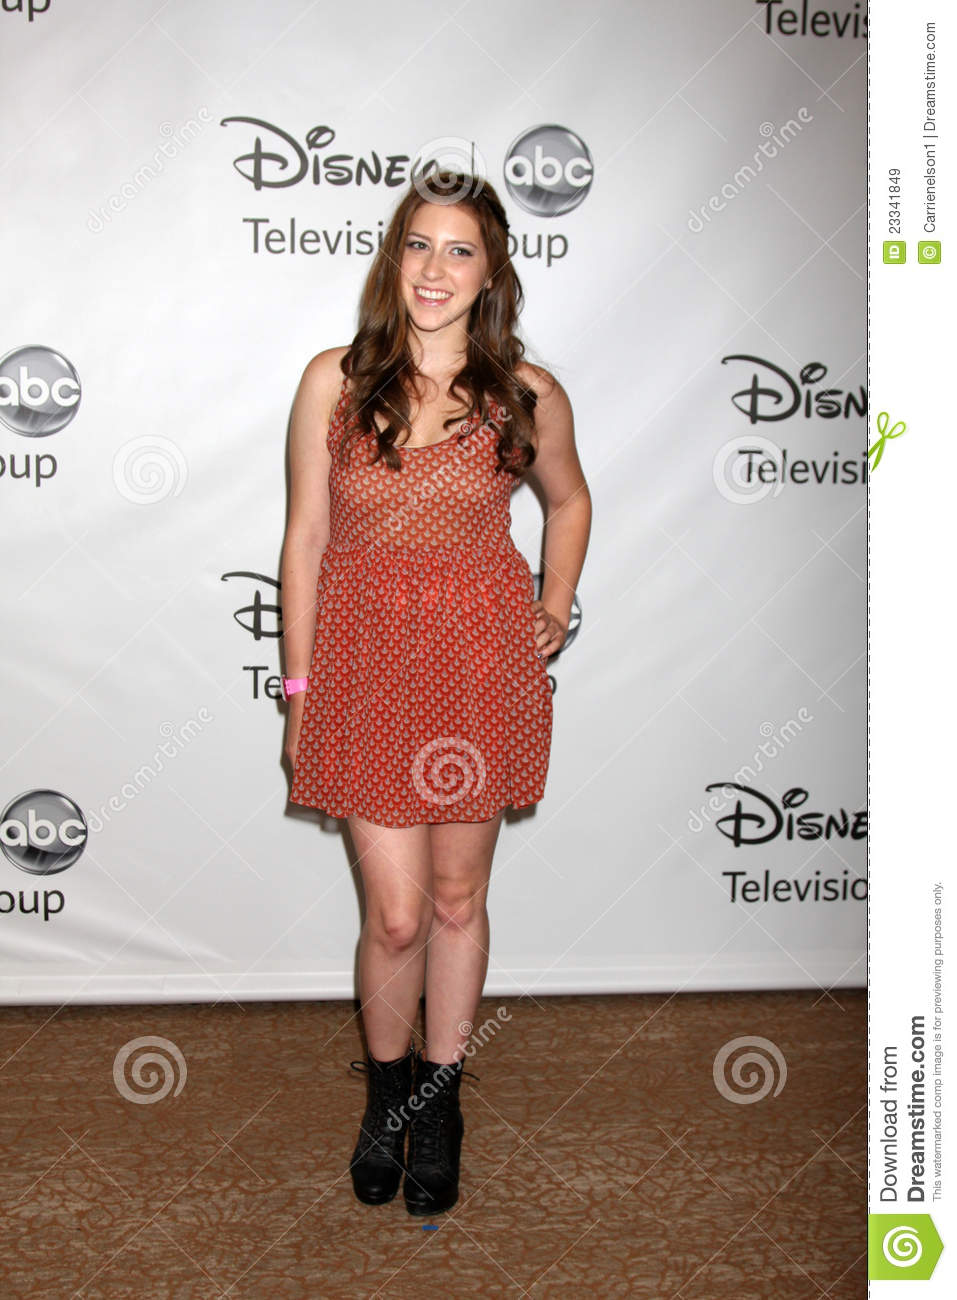 ... Summer Press Tour Party at Beverly Hilton Hotel on August 7, 2011 in